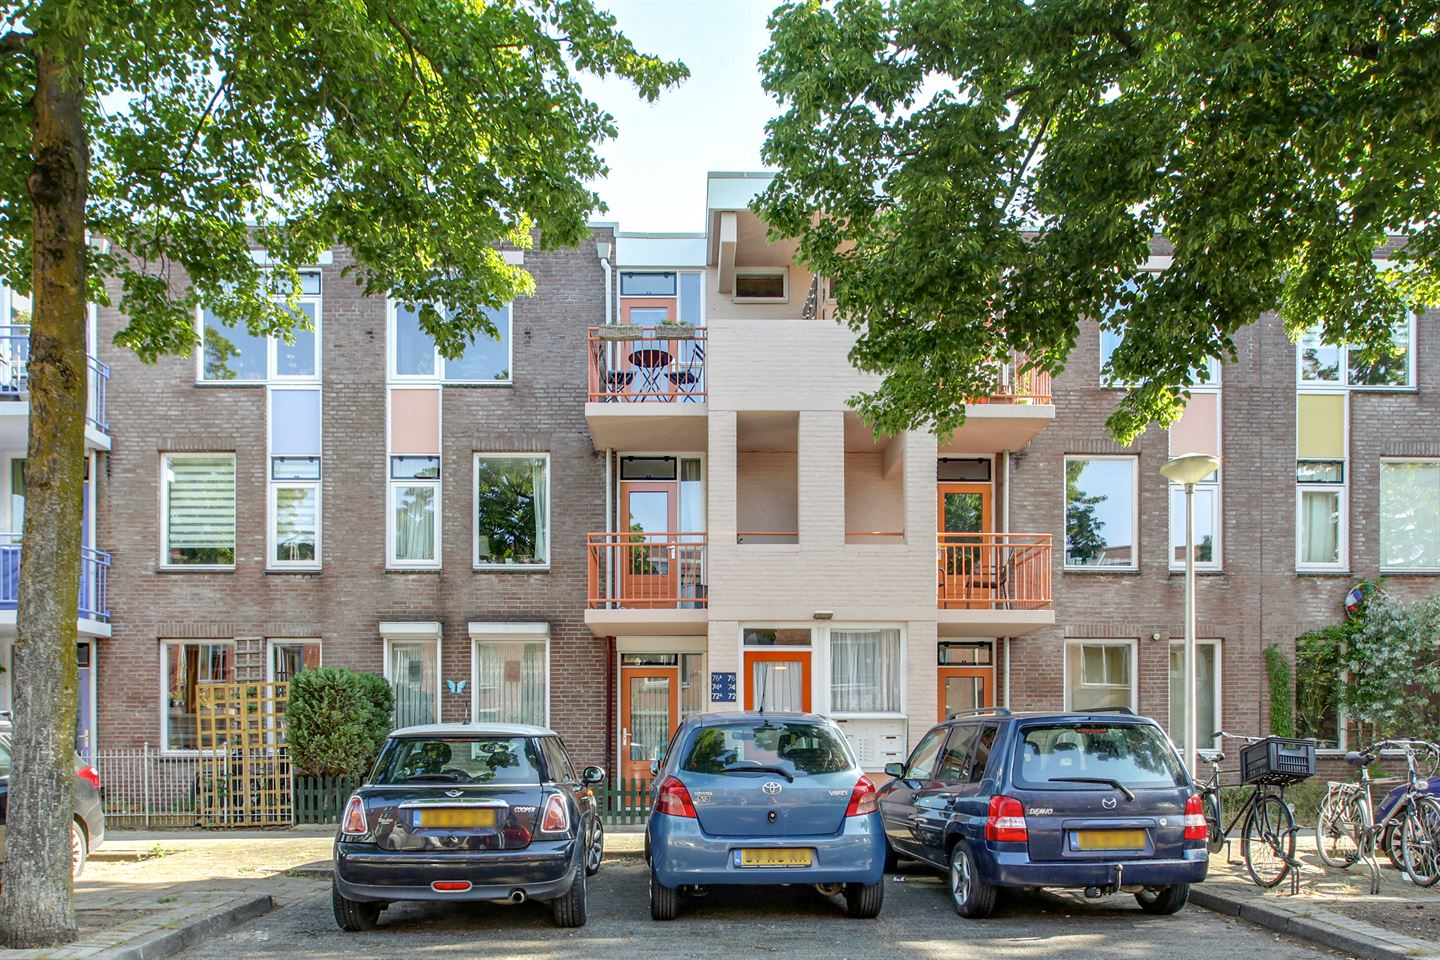 View photo 1 of Sperwerstraat 76 a